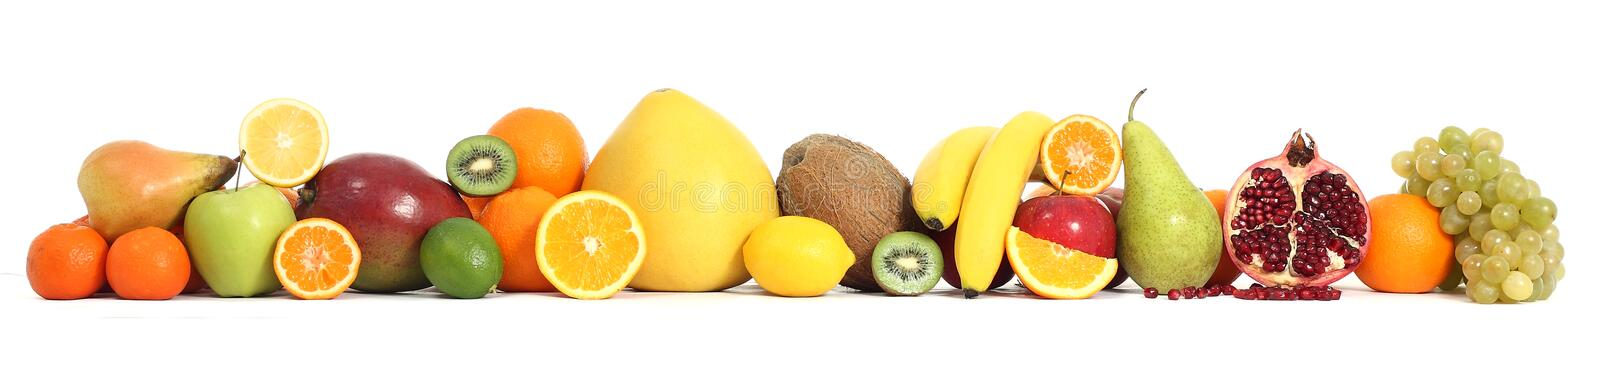 Fruta do alimento fotografia de stock